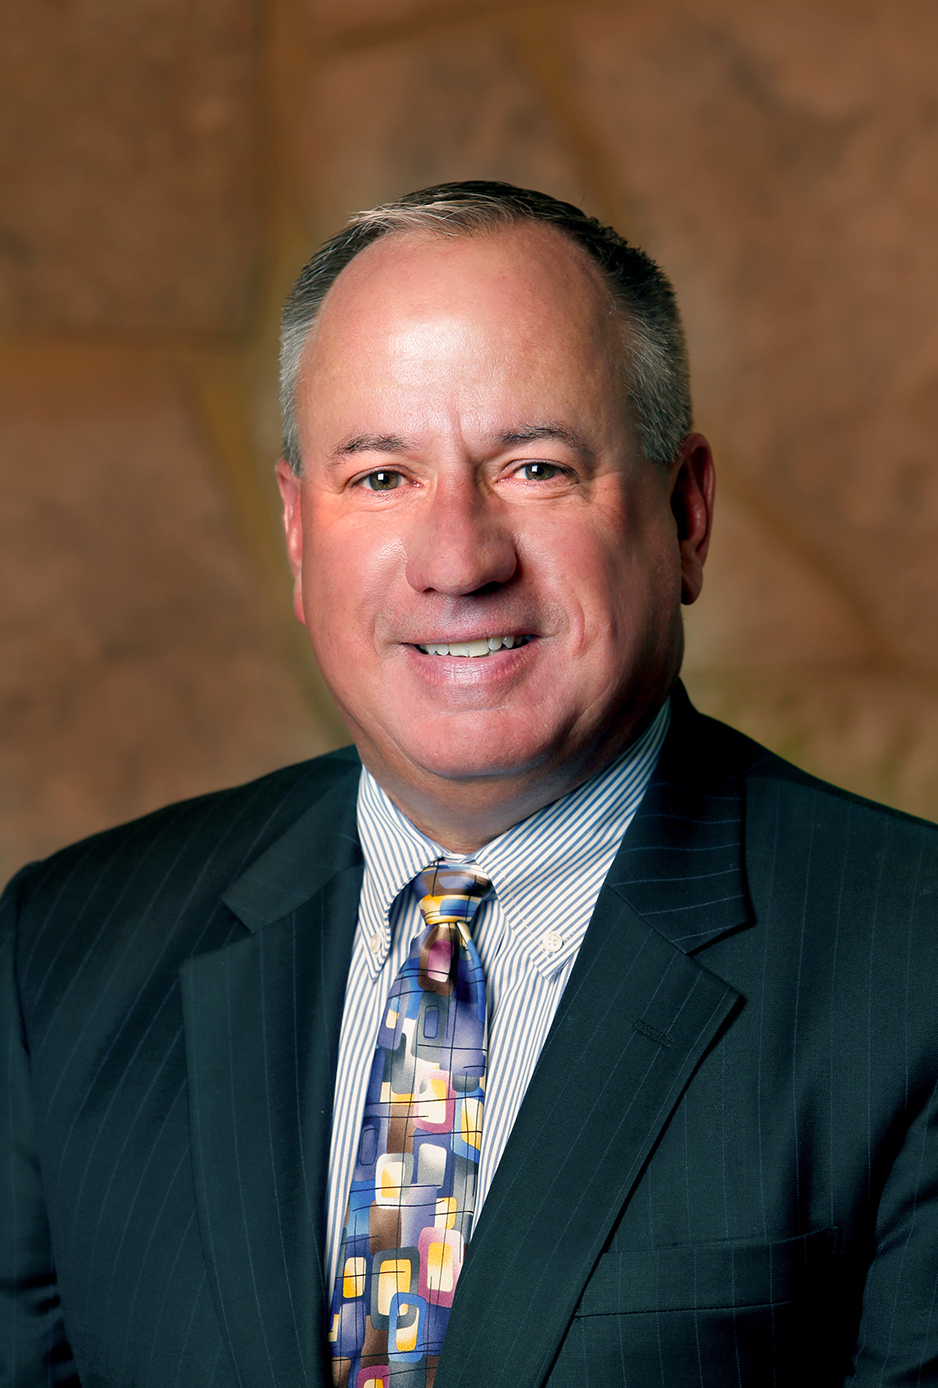 Photo of Terry M. Kurt, Attorney and Shareholder at Hammer Law Offices in Dubuque, Iowa